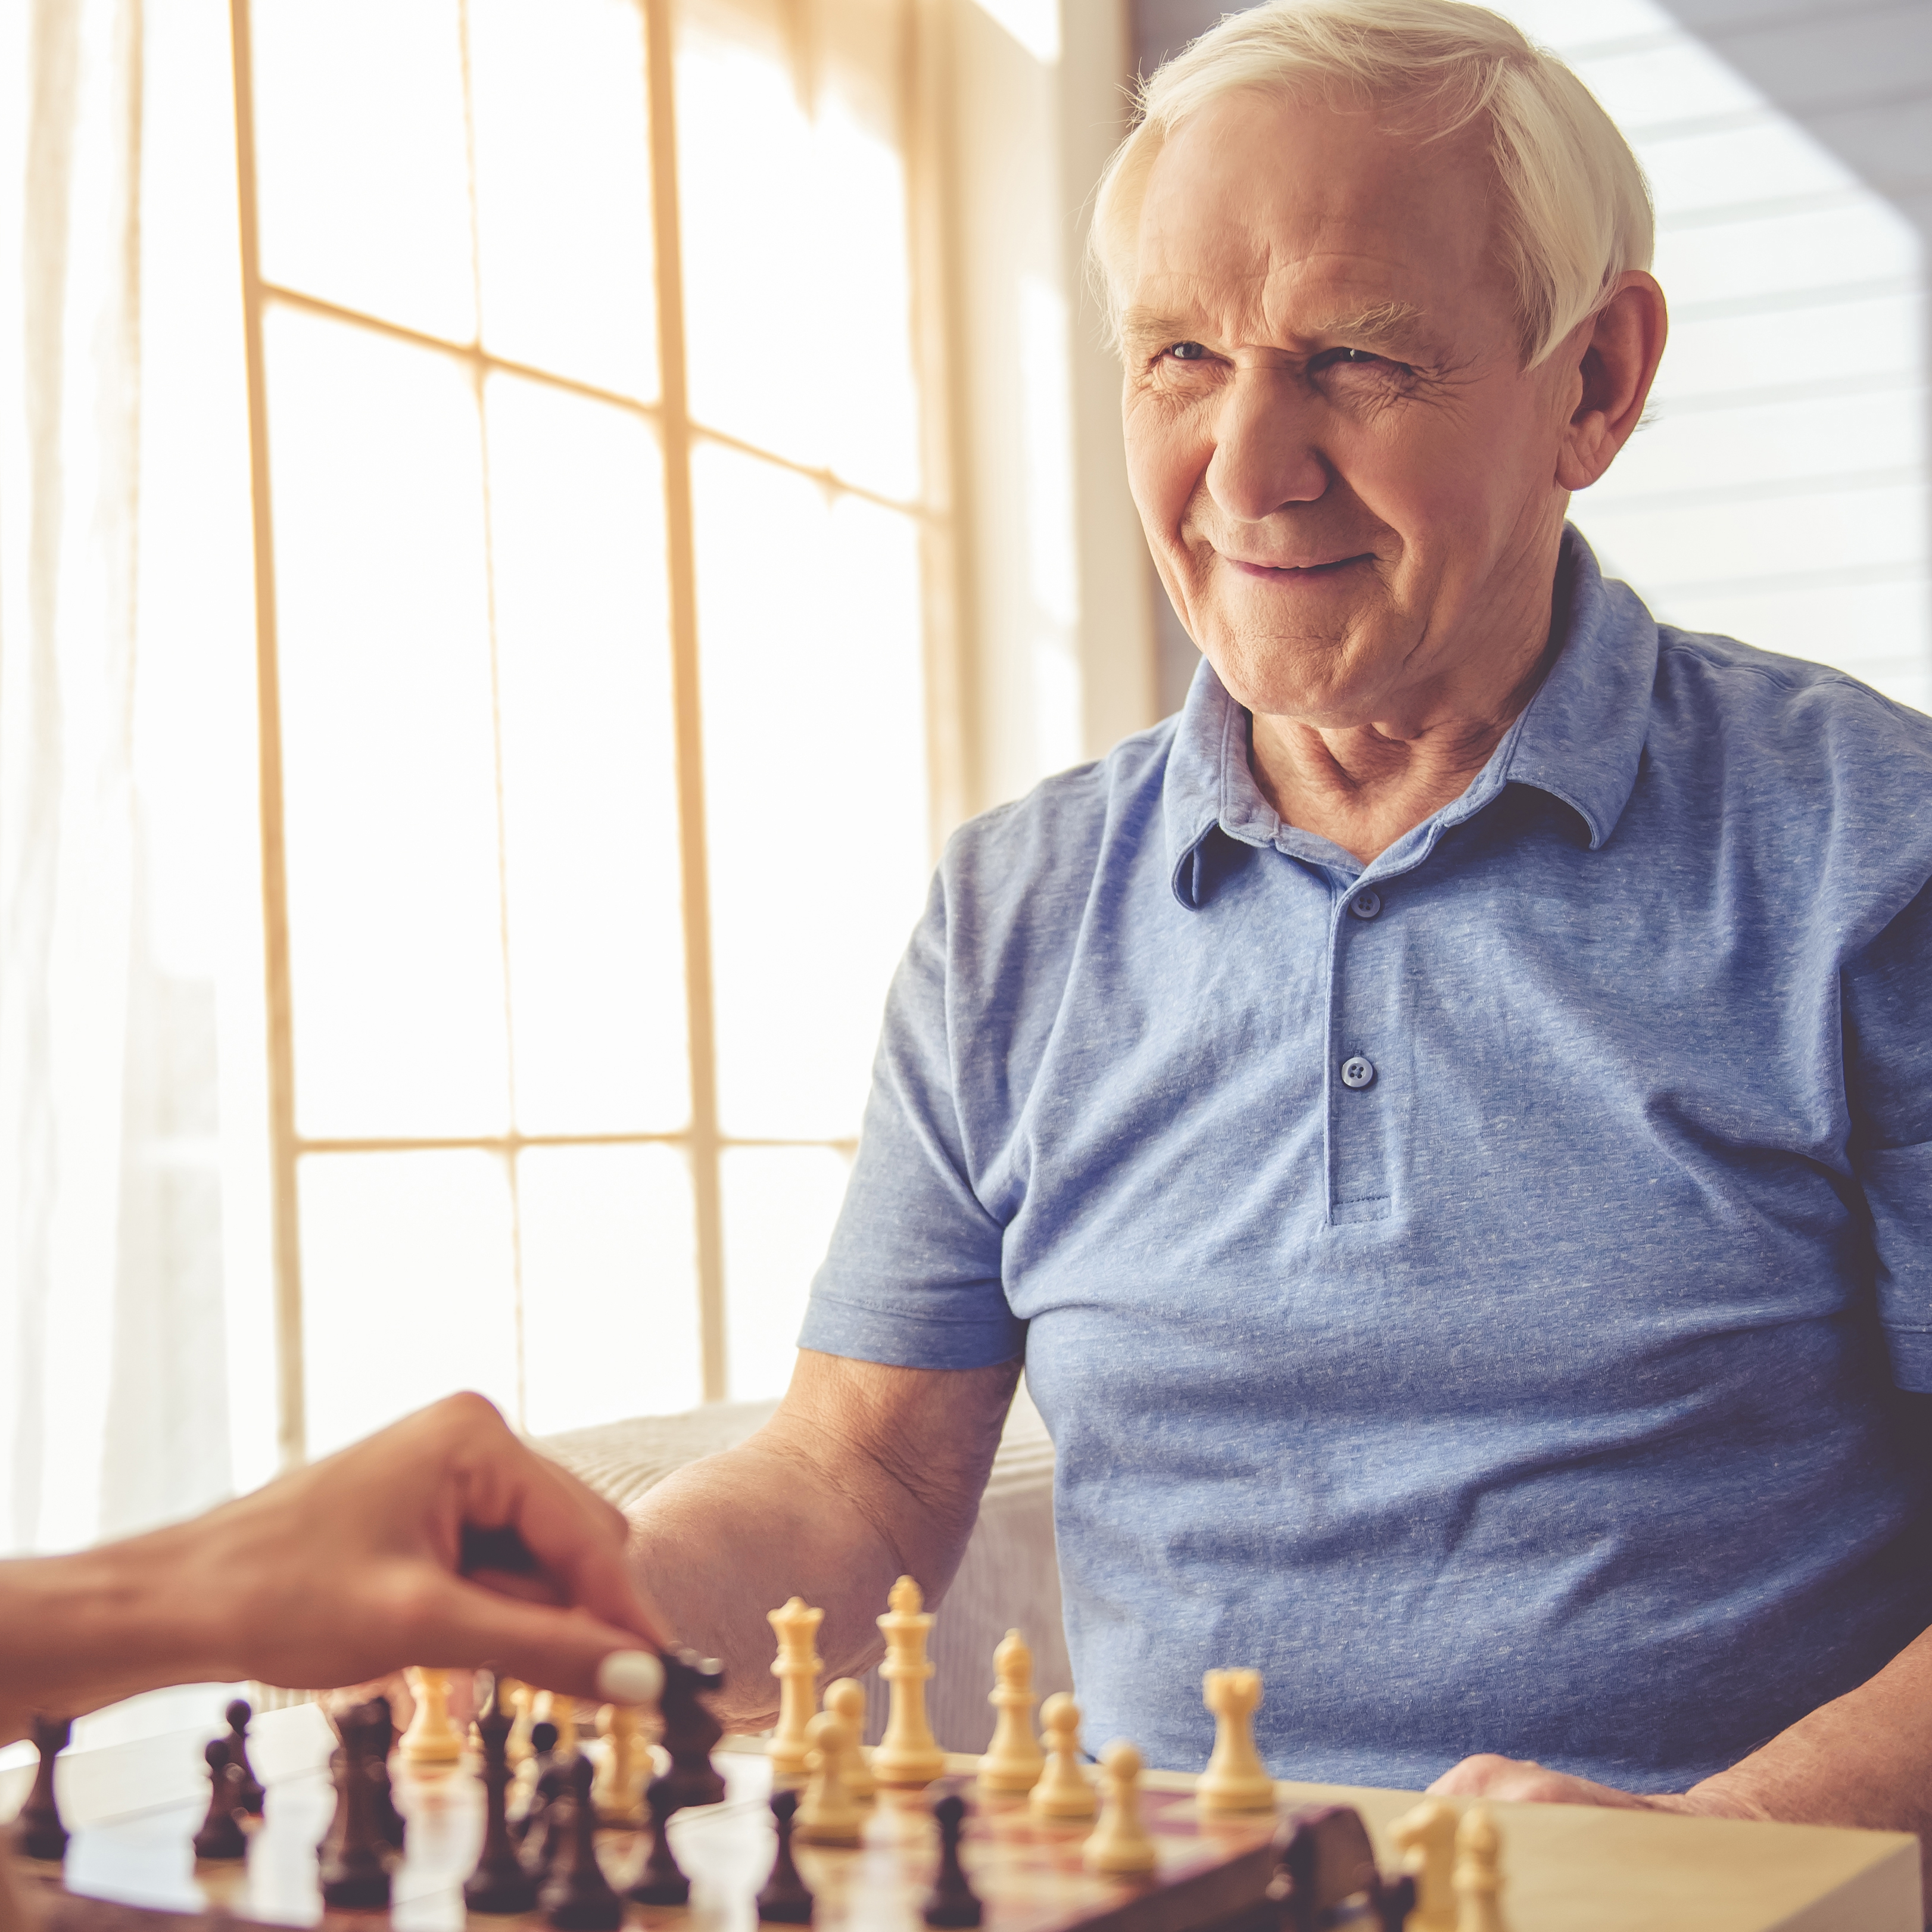 an older man playing a board game of chess with a young person